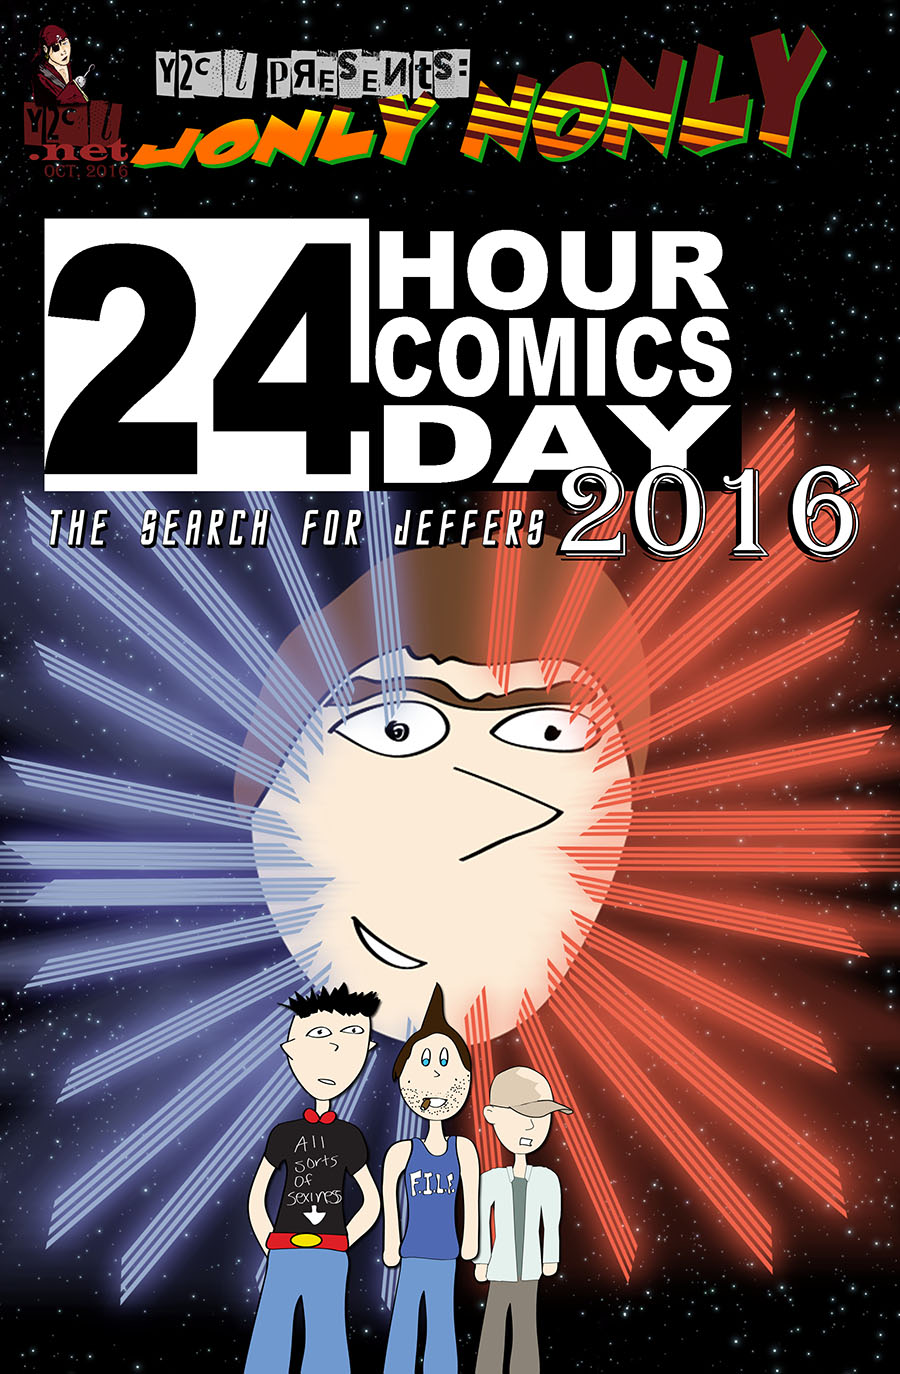 24 Hour Comics Day 2016 – The Search For Jeffers – COVER